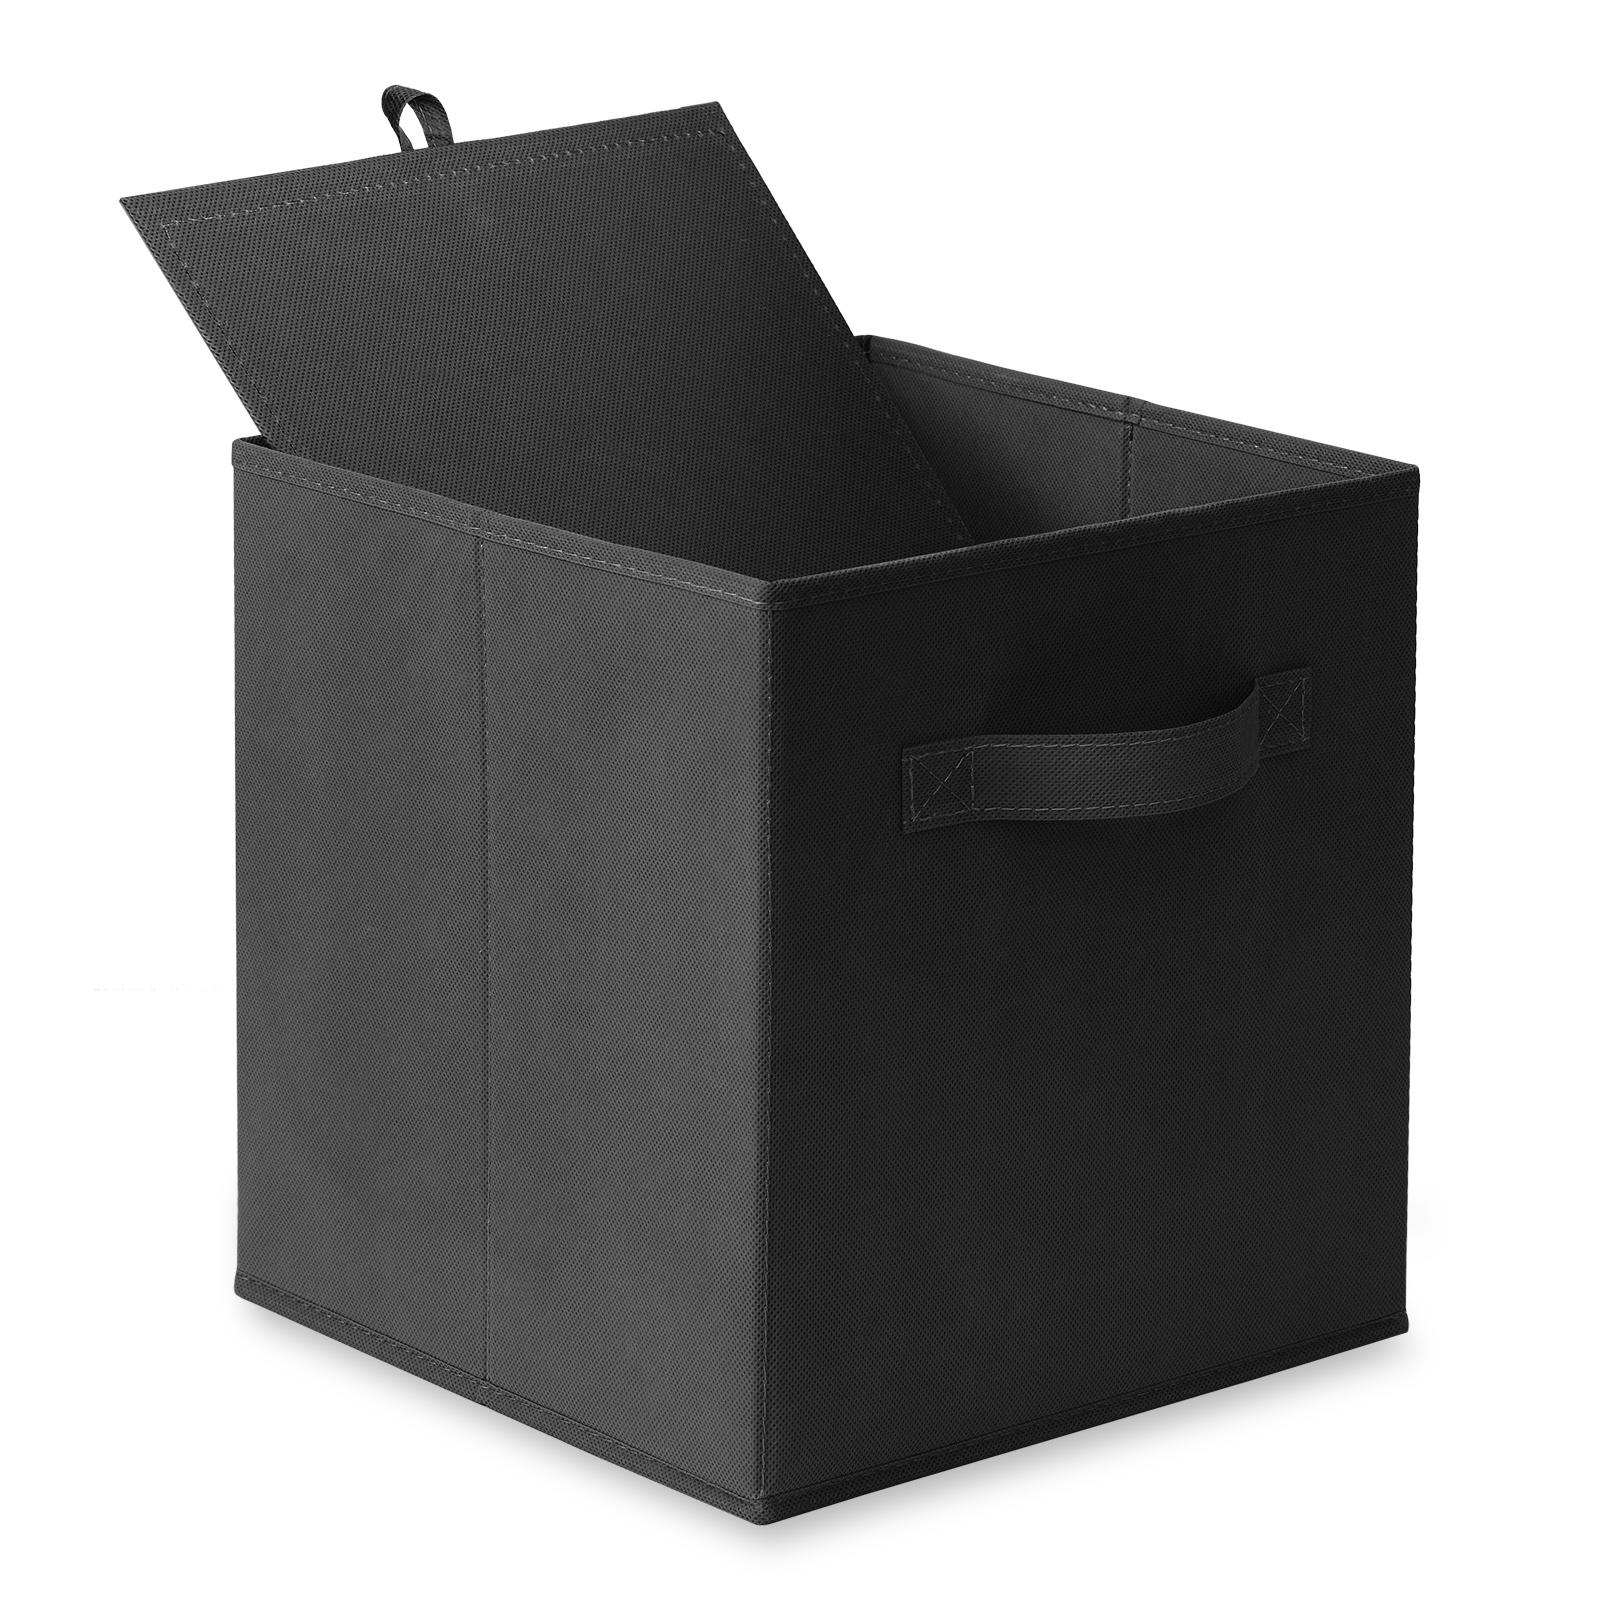 6-Collapsible-Foldable-Cloth-Fabric-Cubby-Cube-Storage-Bins-Baskets-for-Shelves thumbnail 16